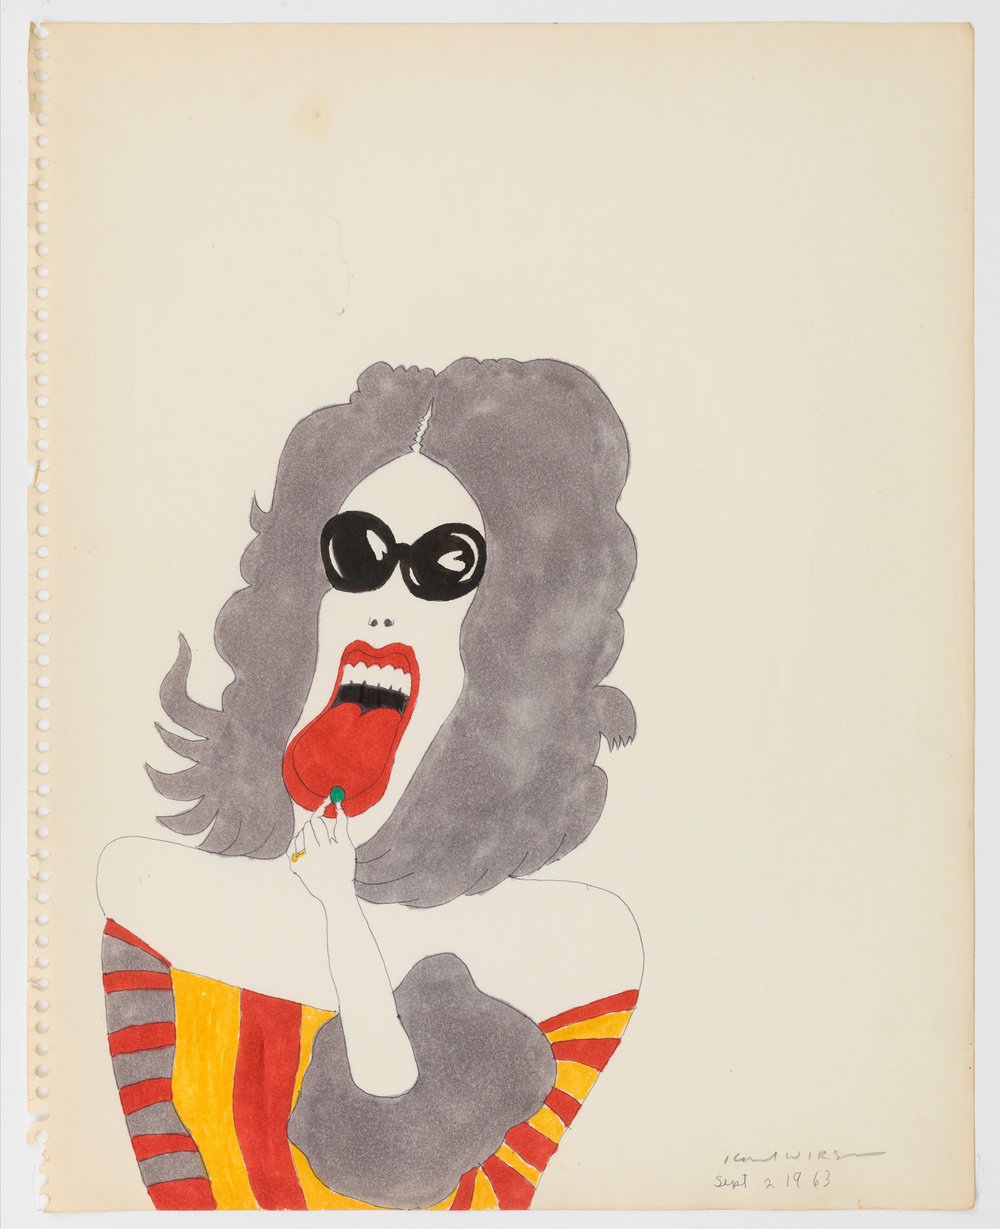 A color ink on paper drawing by Karl Wirsum of a grey-haired figure wearing dark sunglasses and a striped garment.They are sticking their tongue out and placing a small, round, green object onto it.